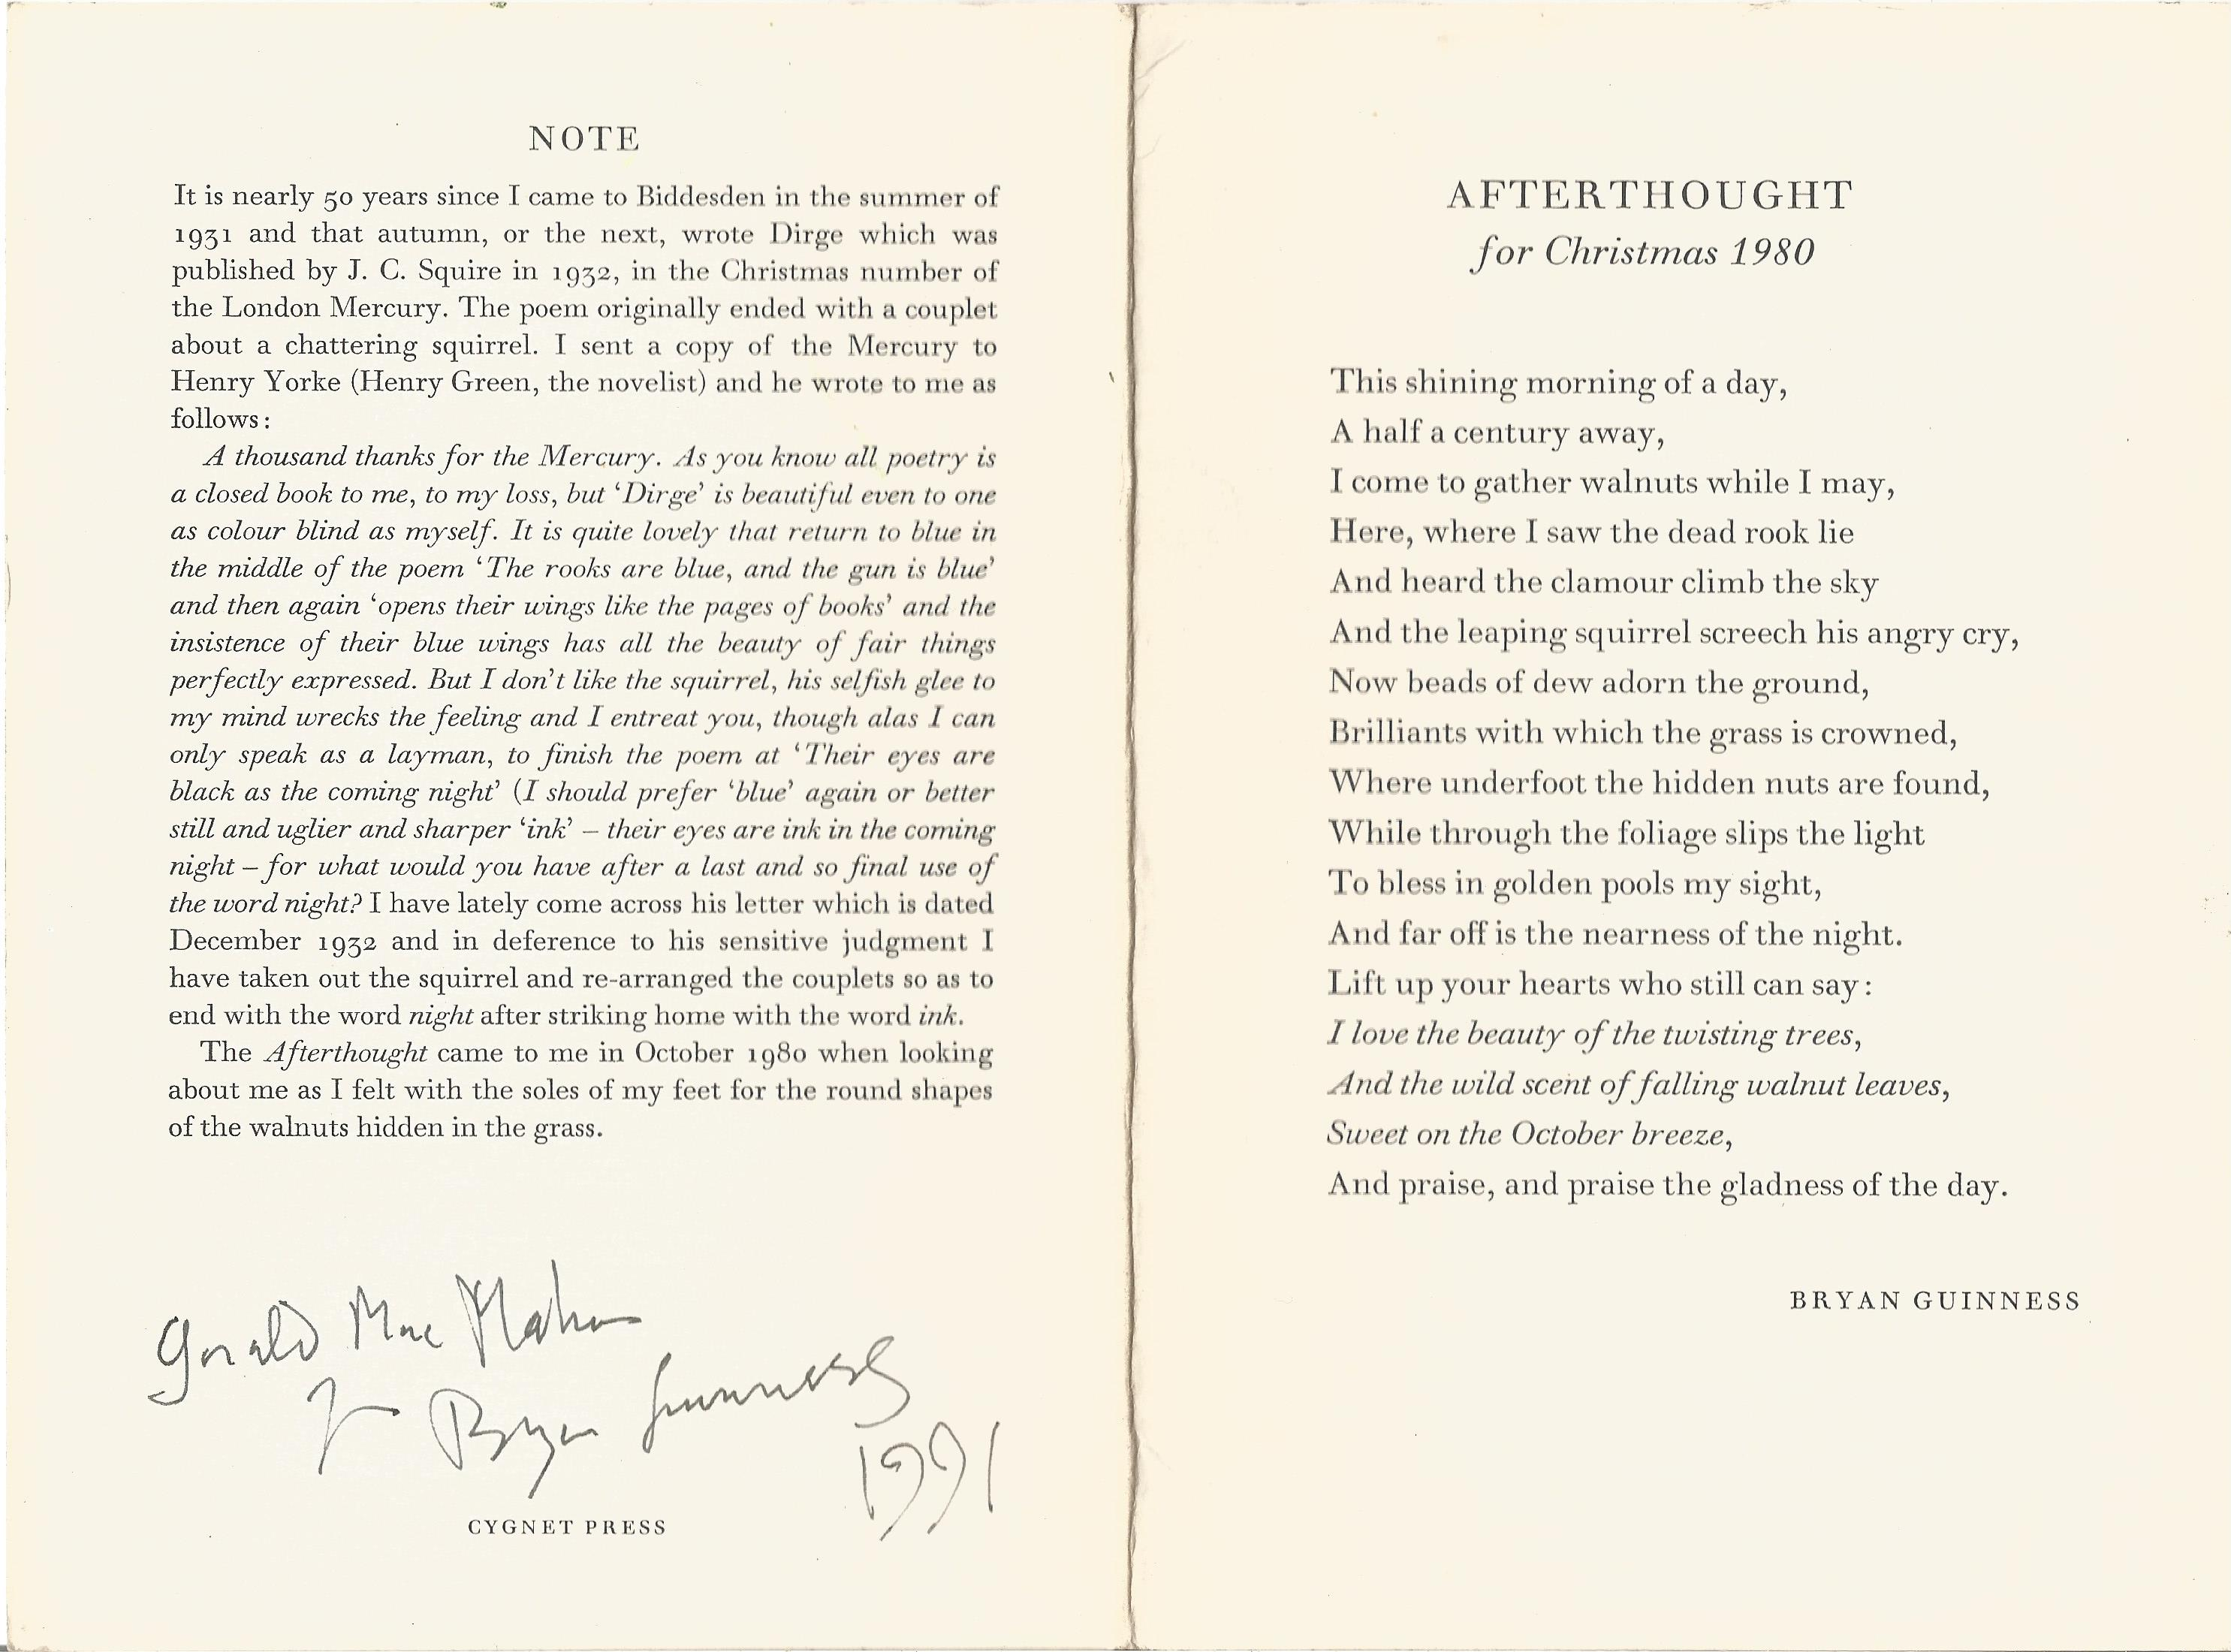 Bryan Guinness collection of three Poems and a note Printed on good Quality Cardboard by Cygnet - Image 2 of 2